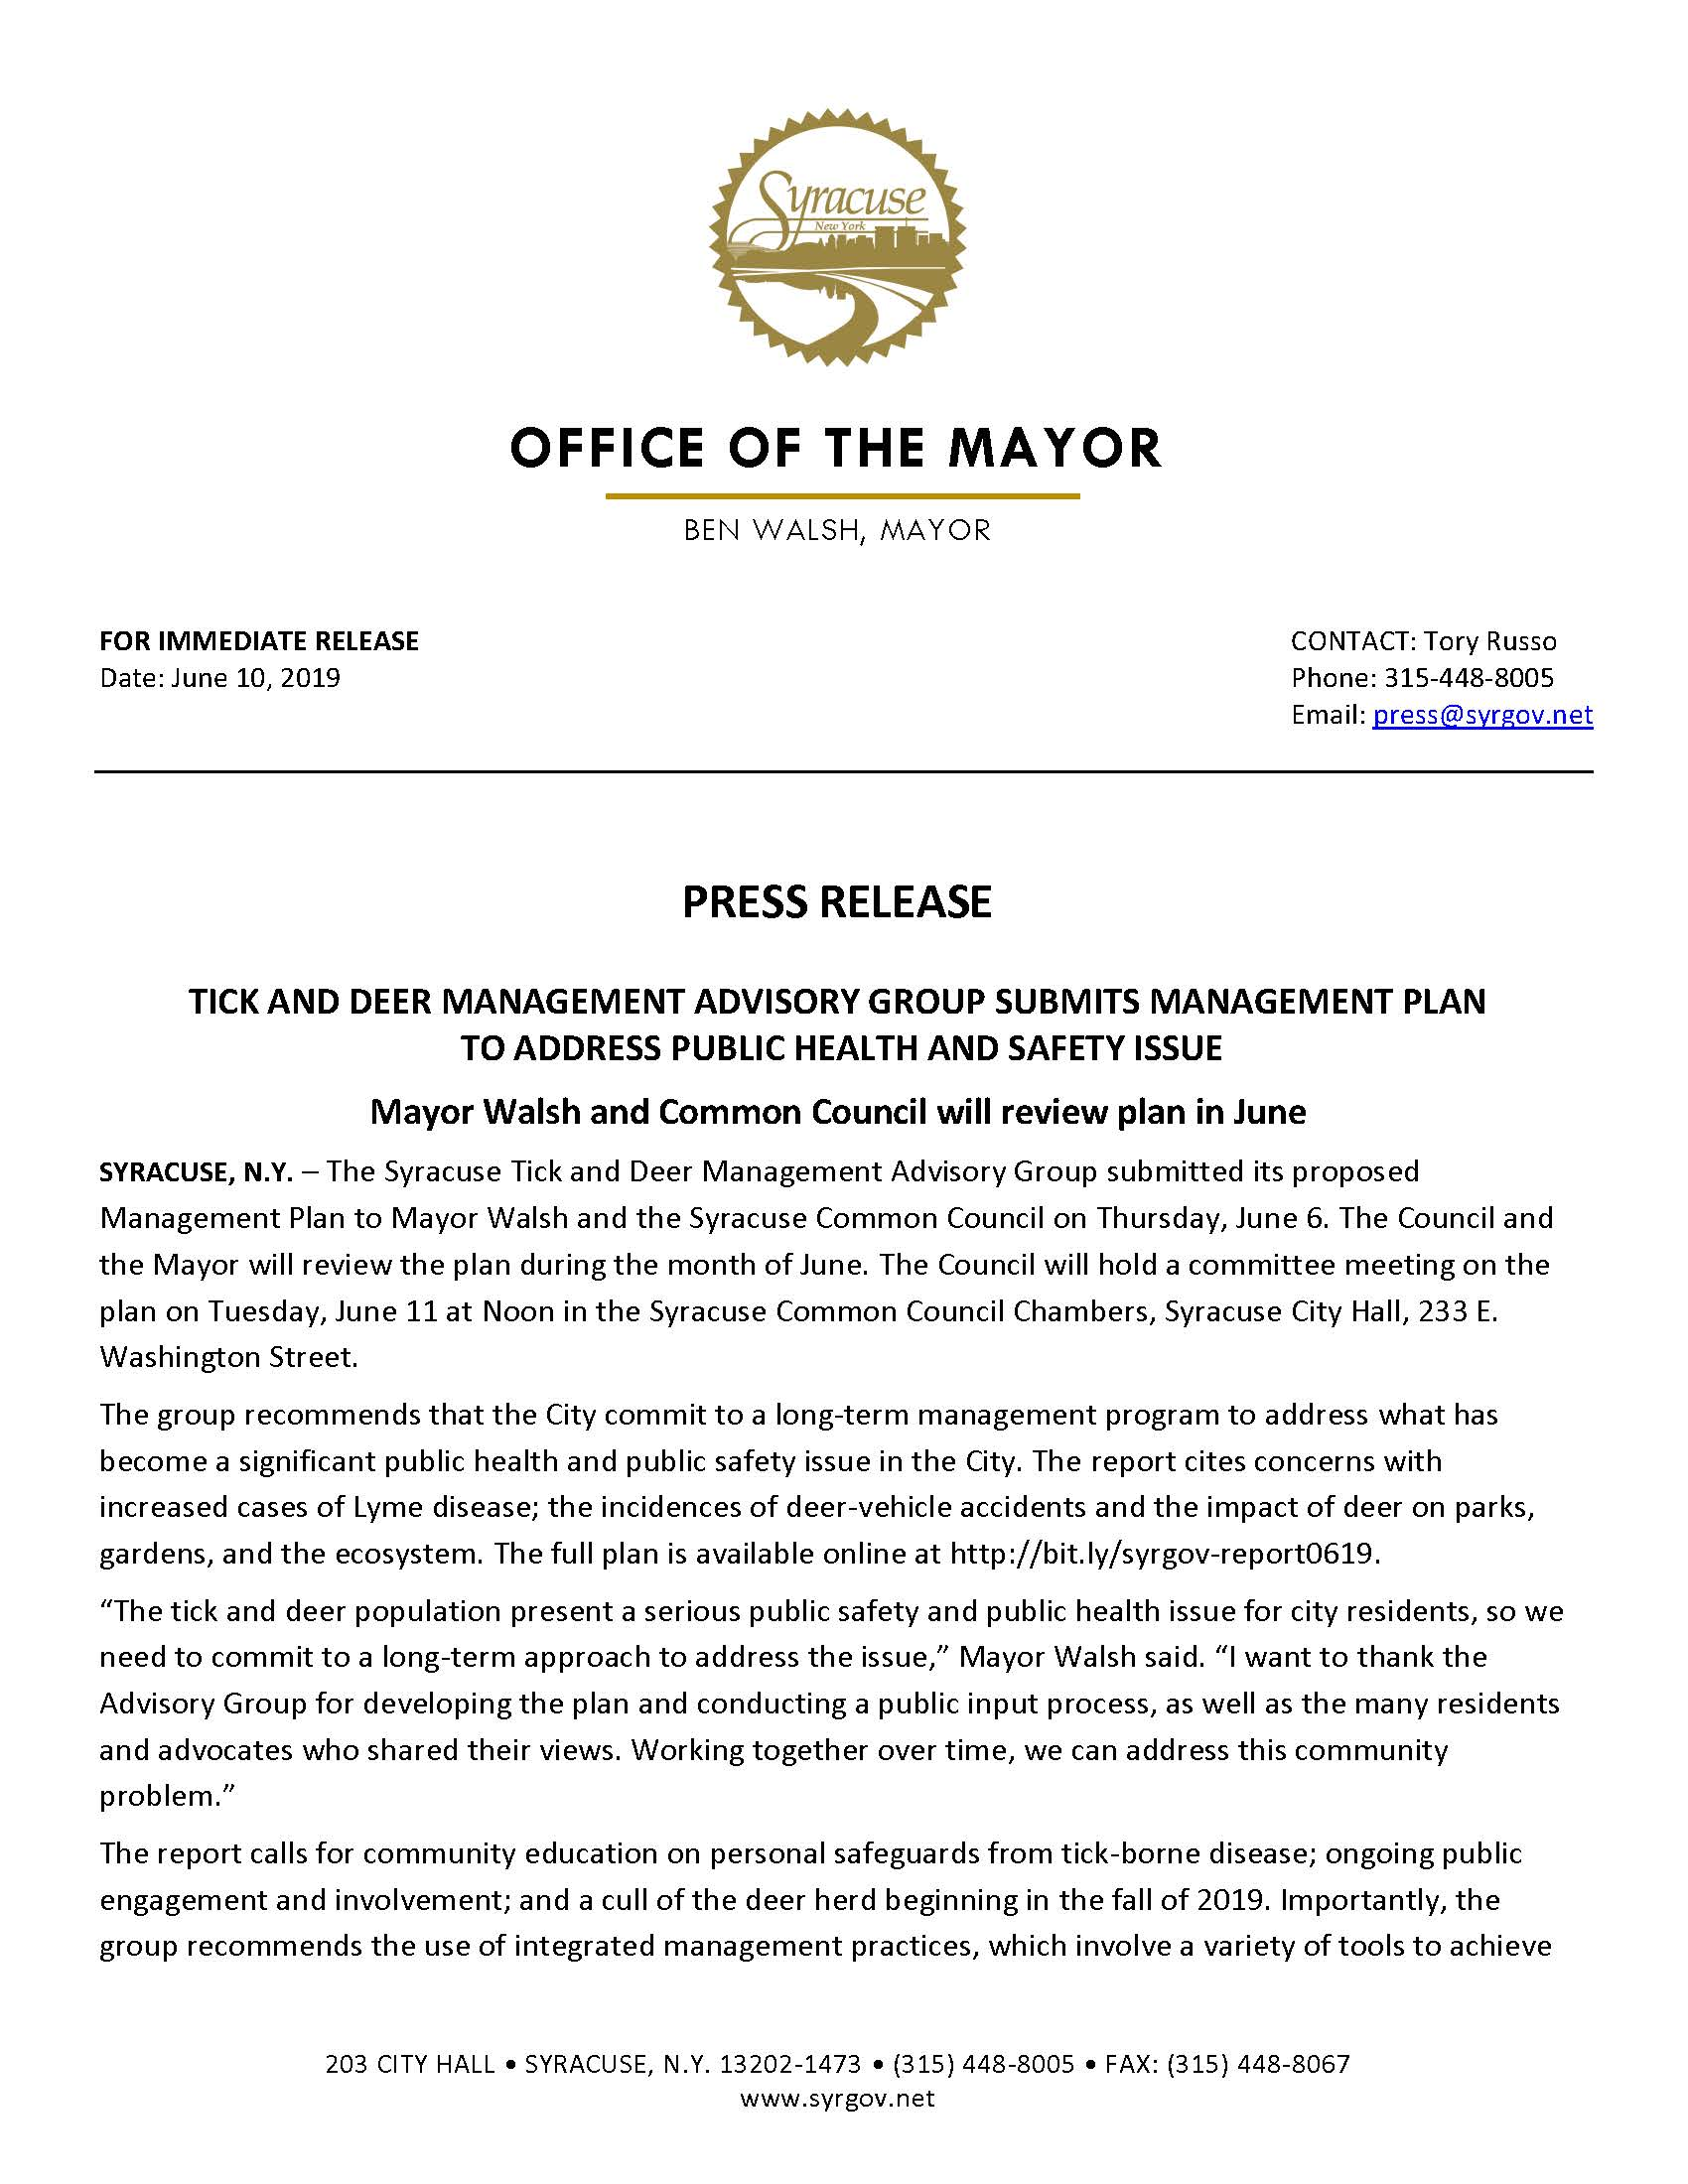 2019 06 10 PRESS RELEASE Advisory Group Submits Tick and Deer Management Plan_Page_1.jpg